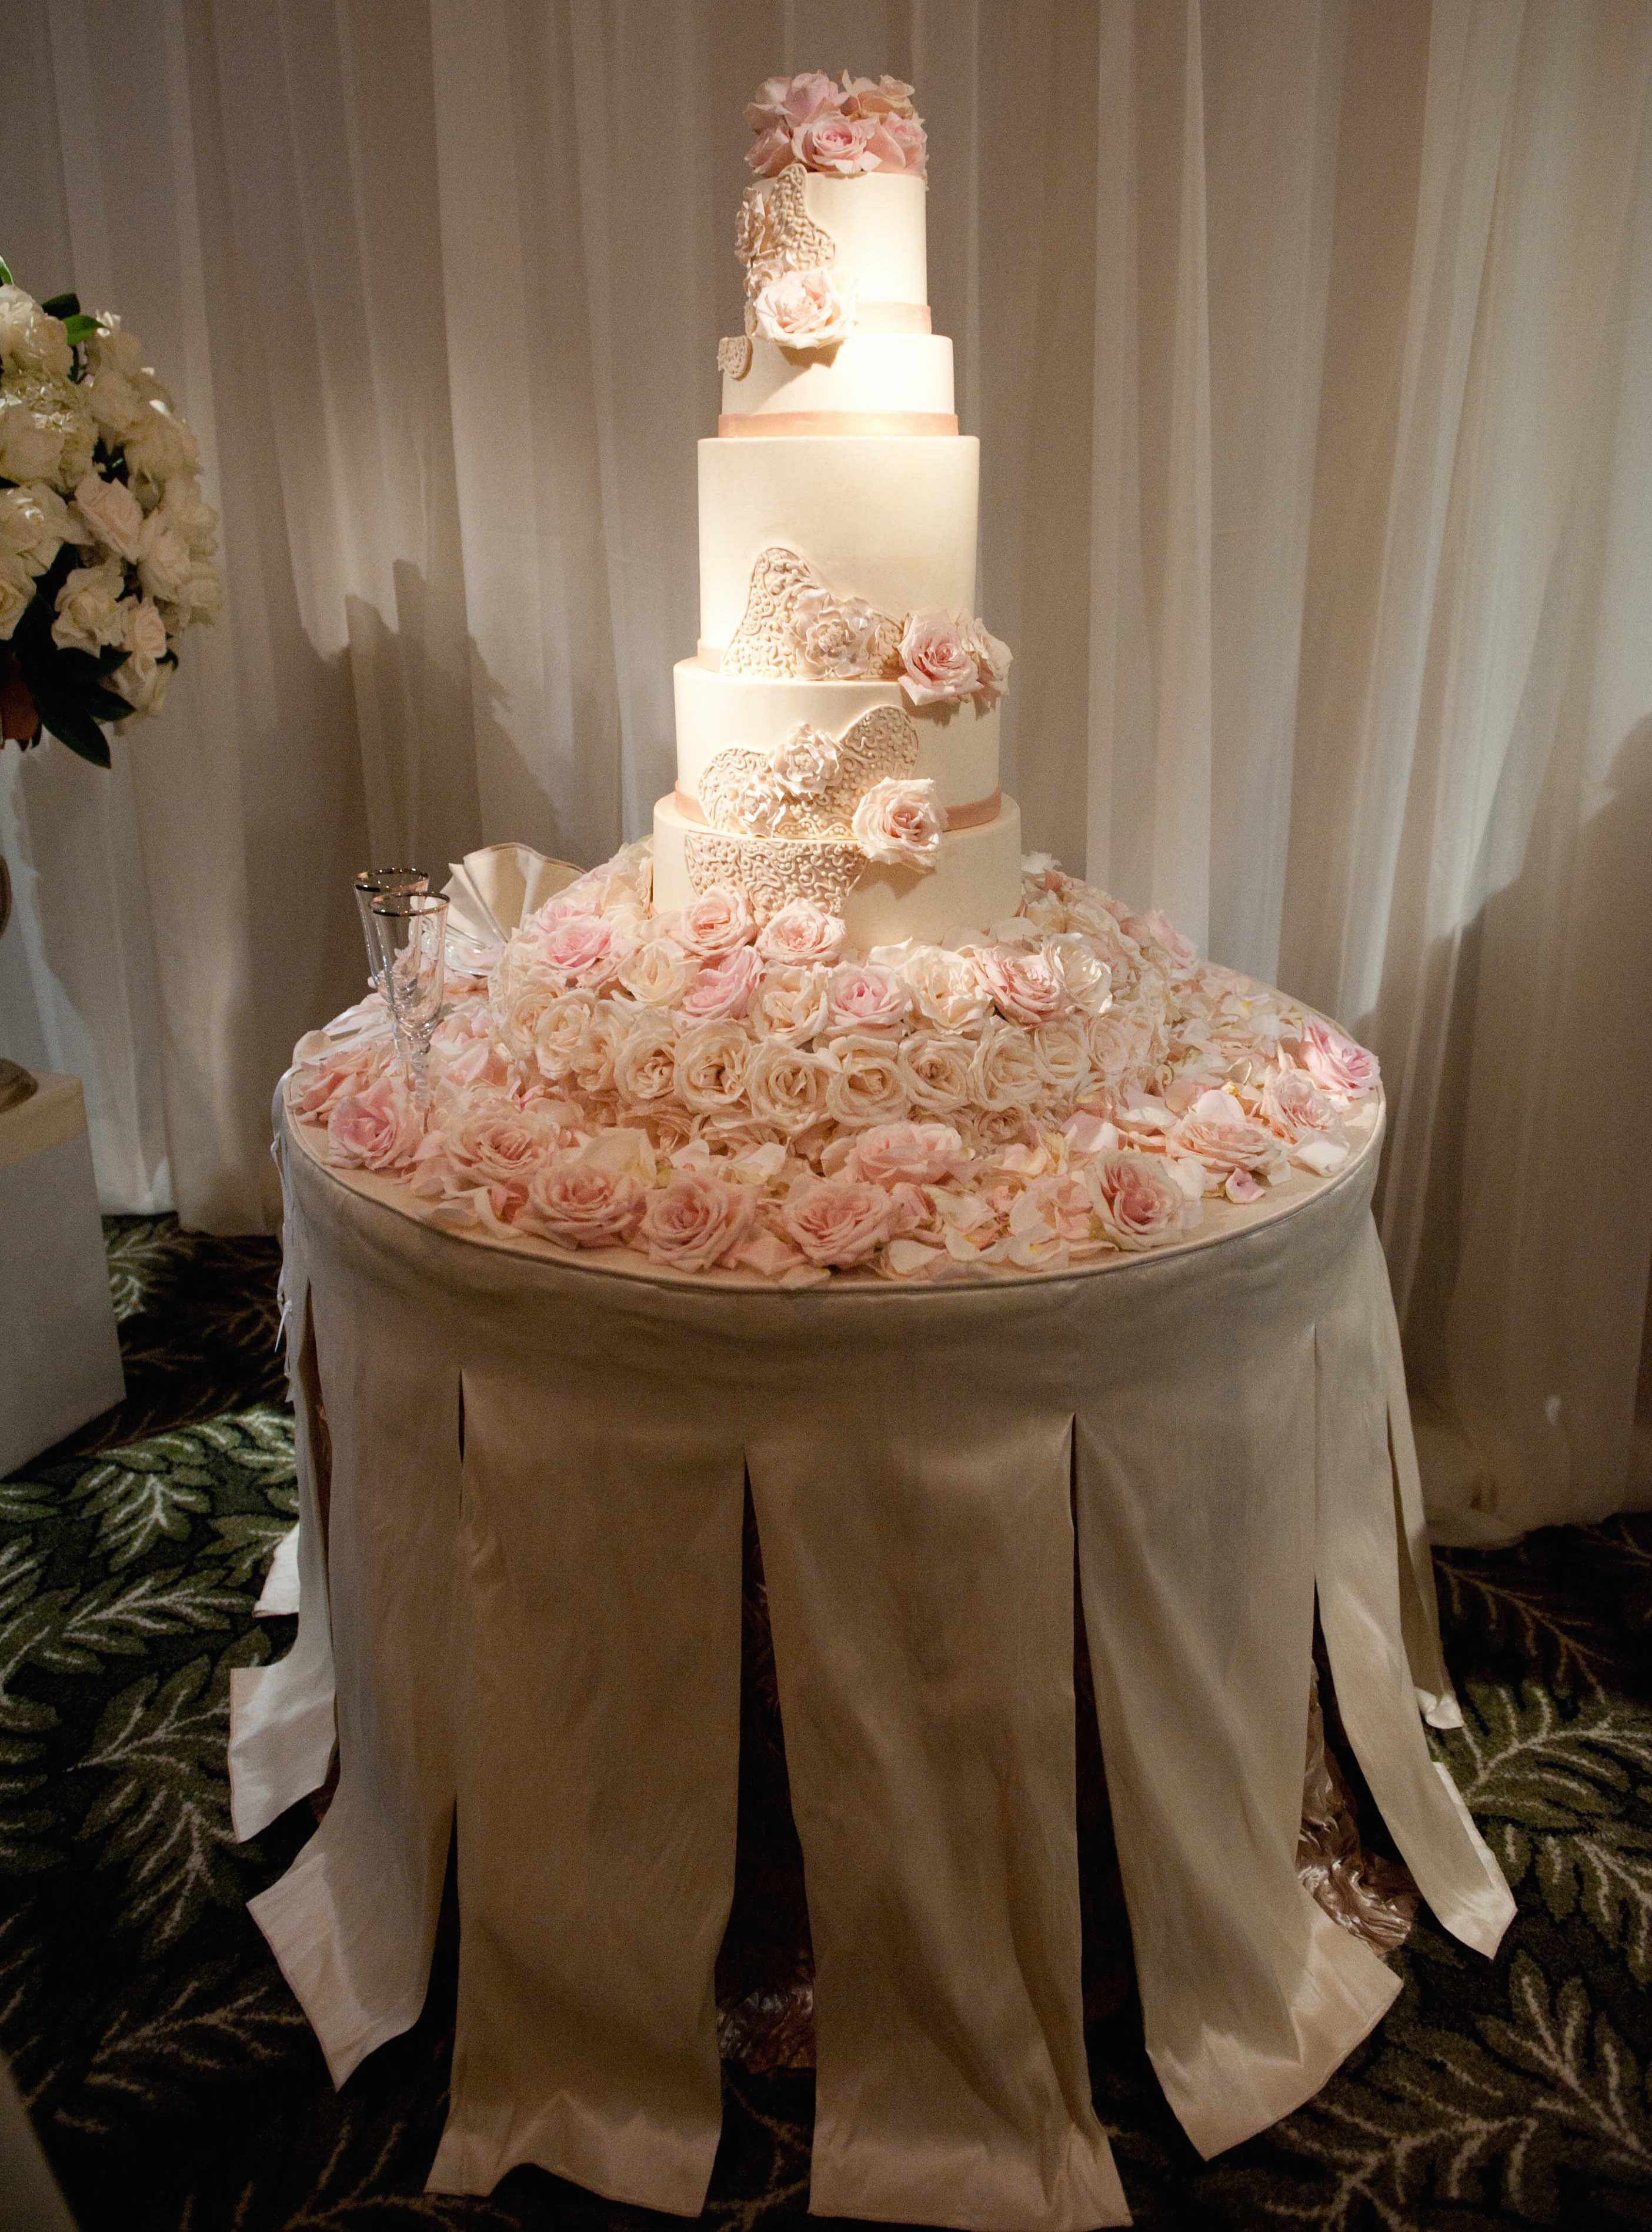 Cake stand on table with blush and ivory roses